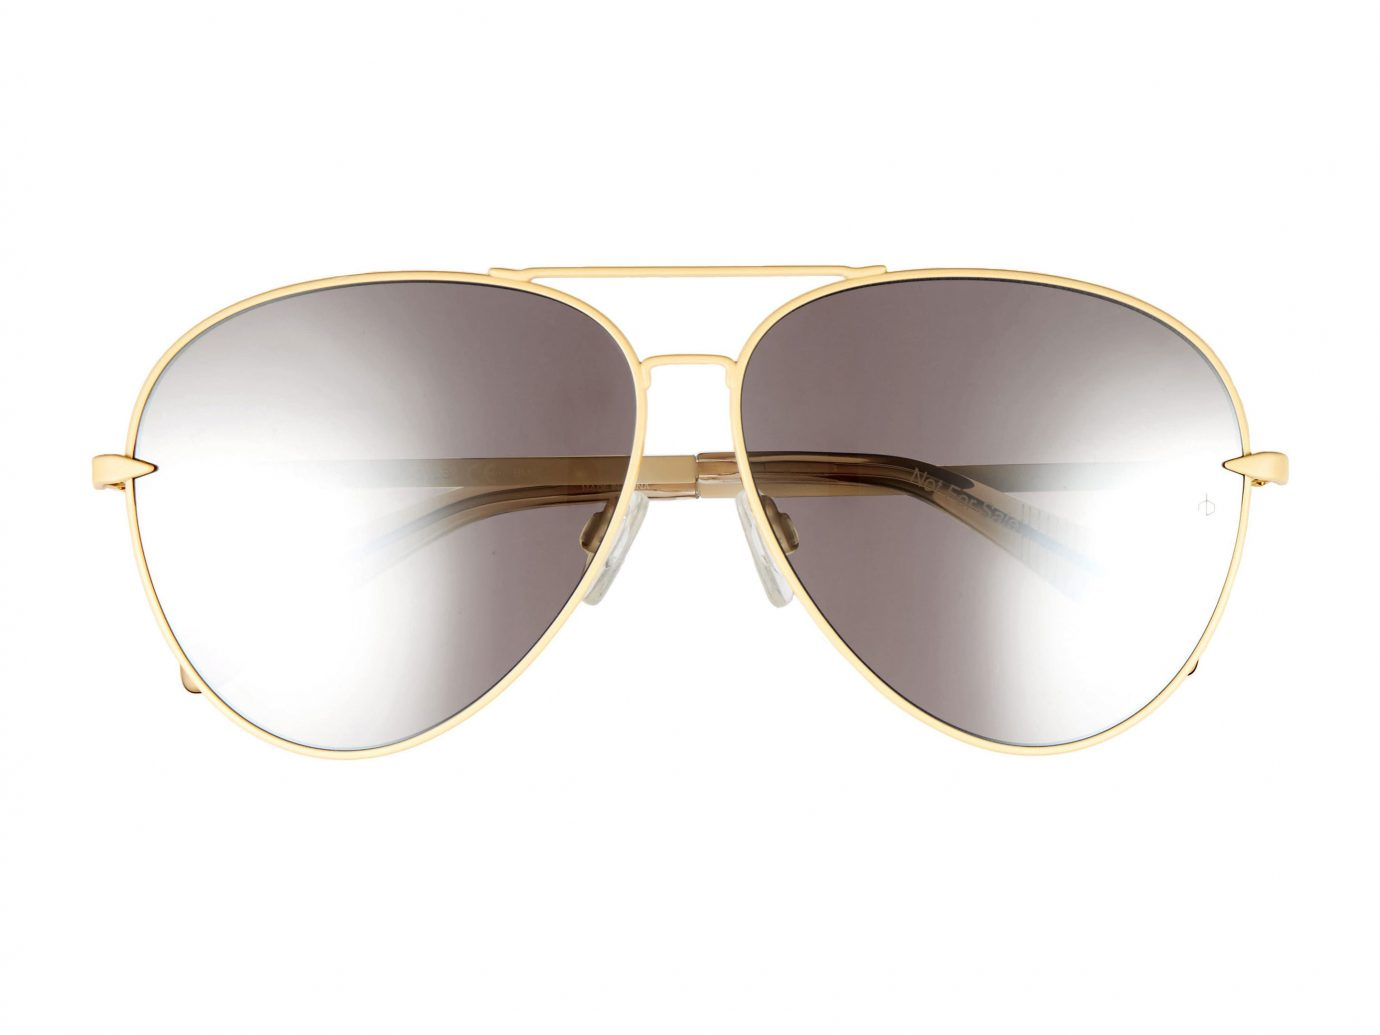 Style + Design Travel Shop eyewear sunglasses vision care yellow glasses spectacles accessory goggles product design product beige